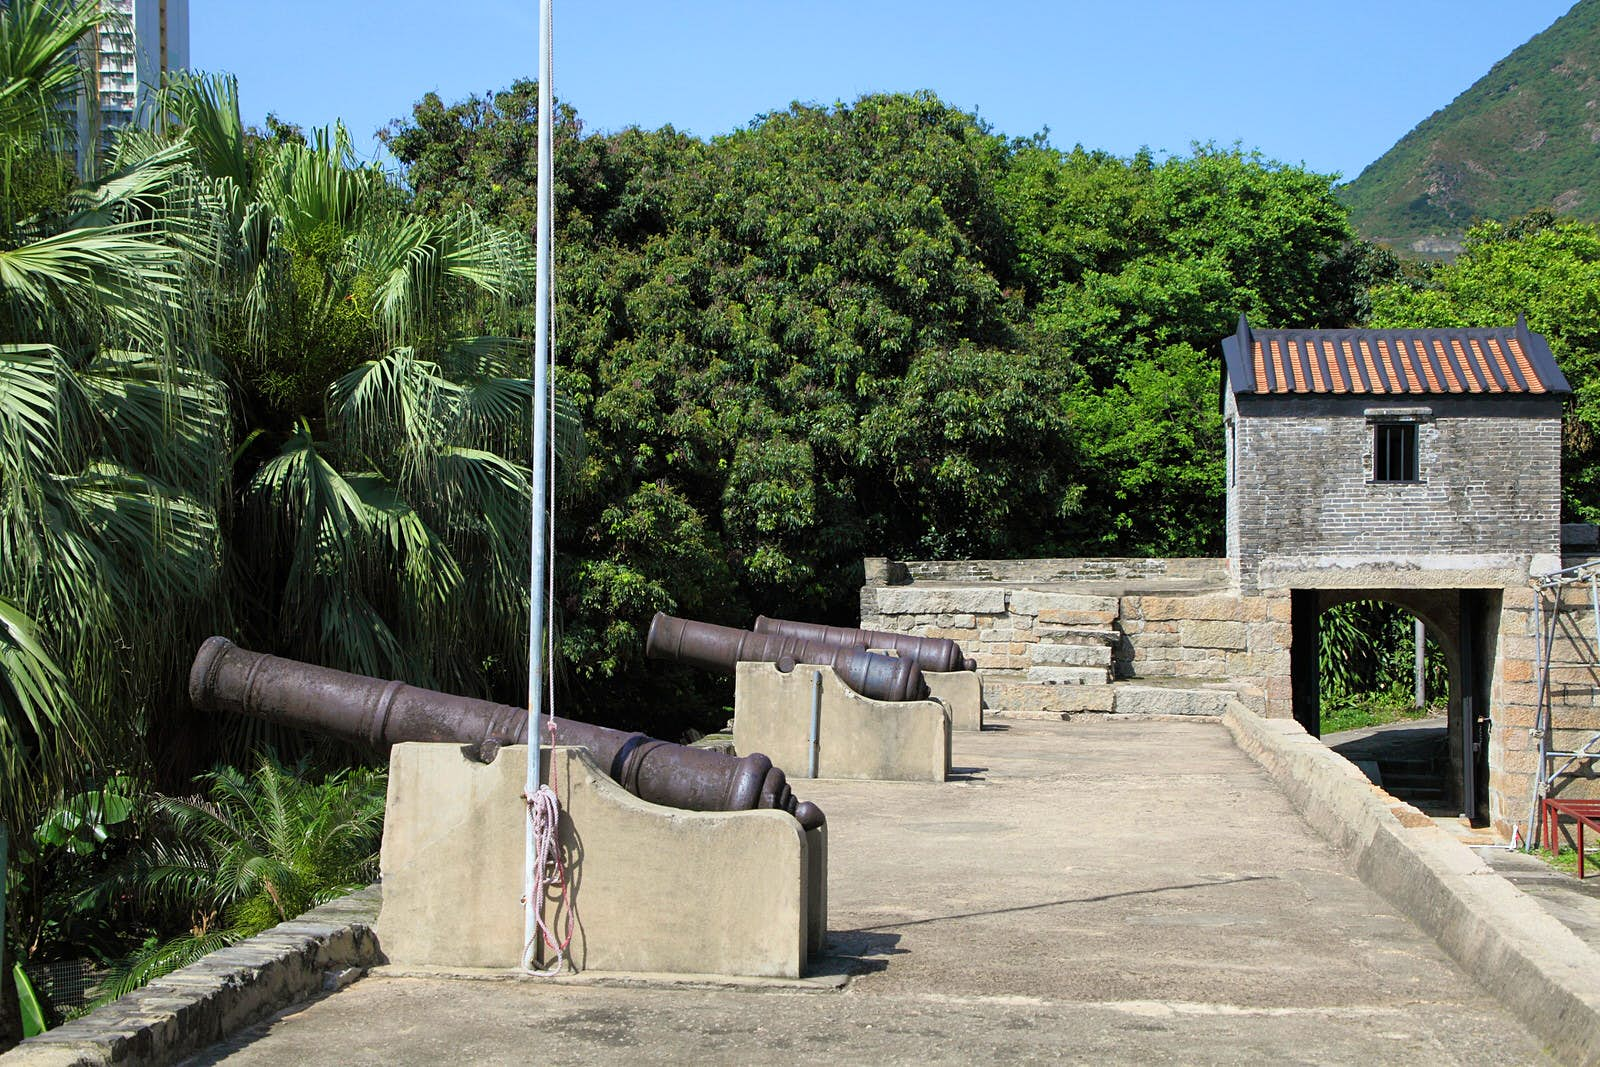 Cannons line the ramparts at Tung Chung Fort